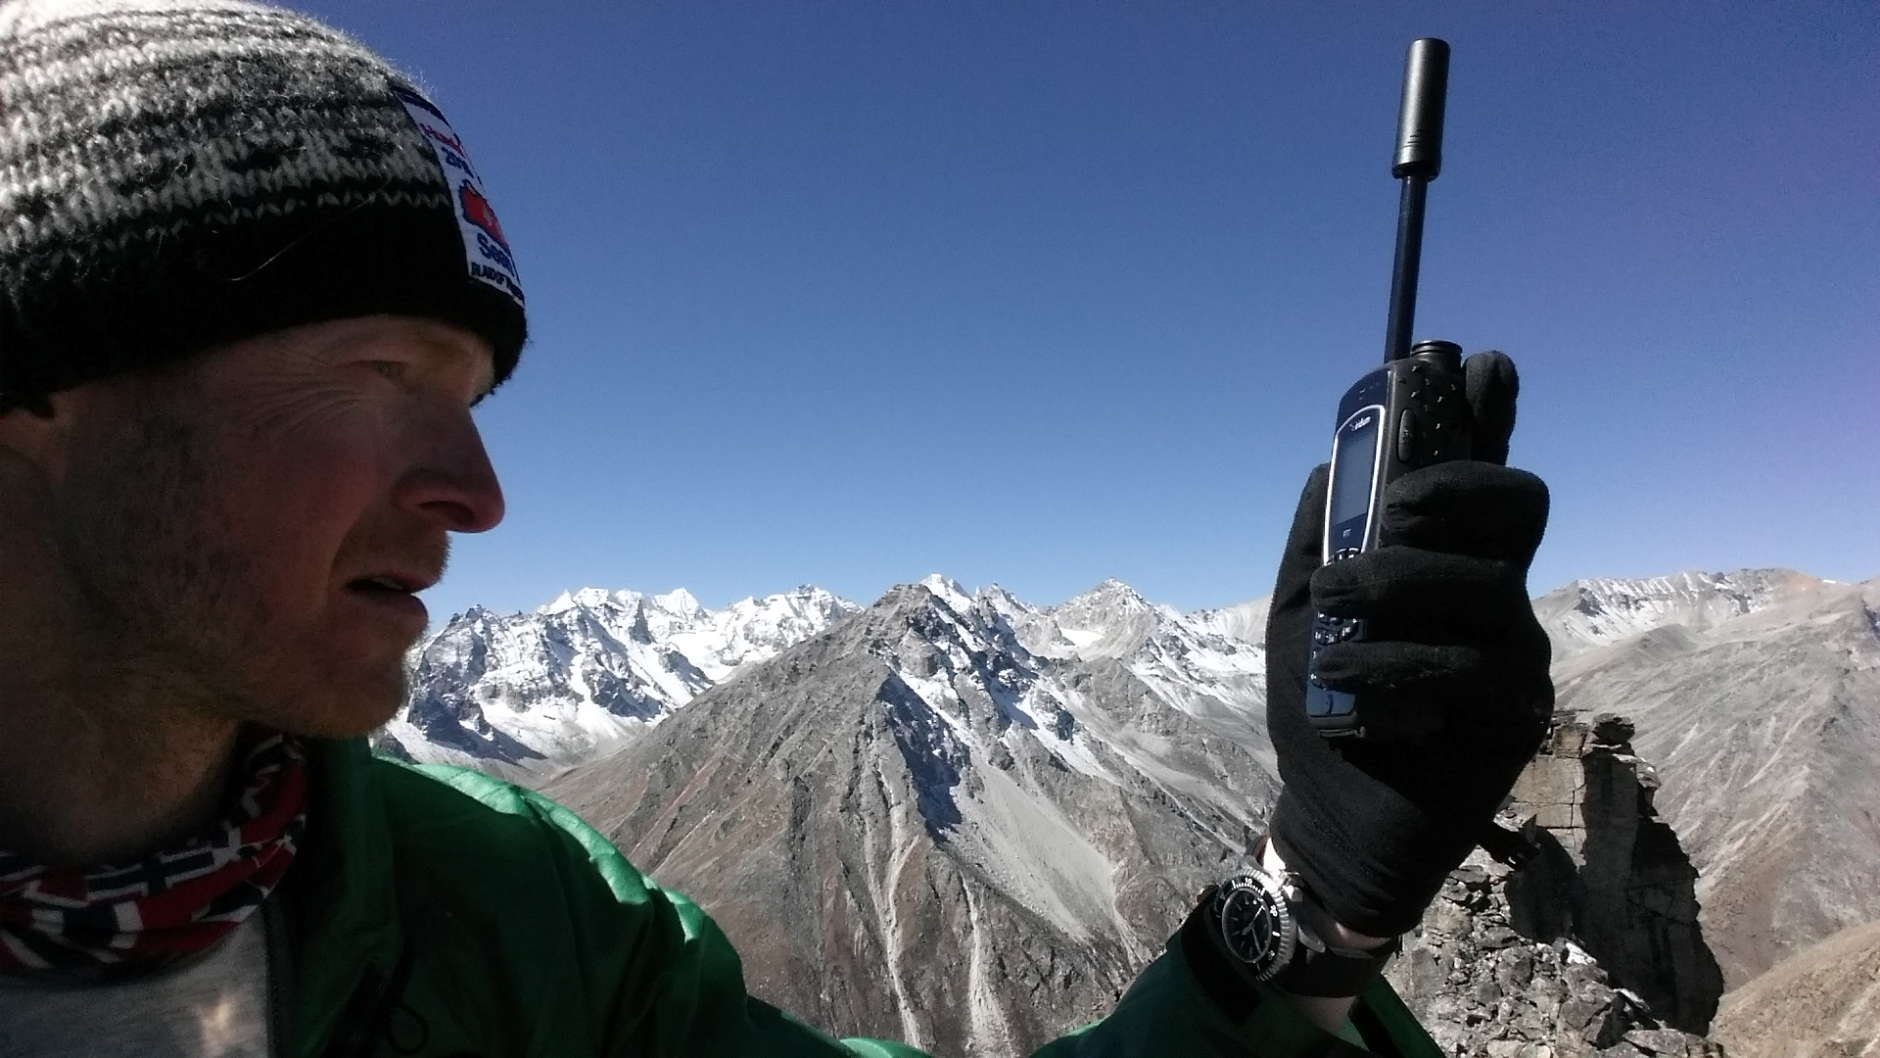 Va.-based adventurer Sean Burch used his push-to-talk device to help him claim world record climbs in Nepal. (Courtesy Sean Burch)